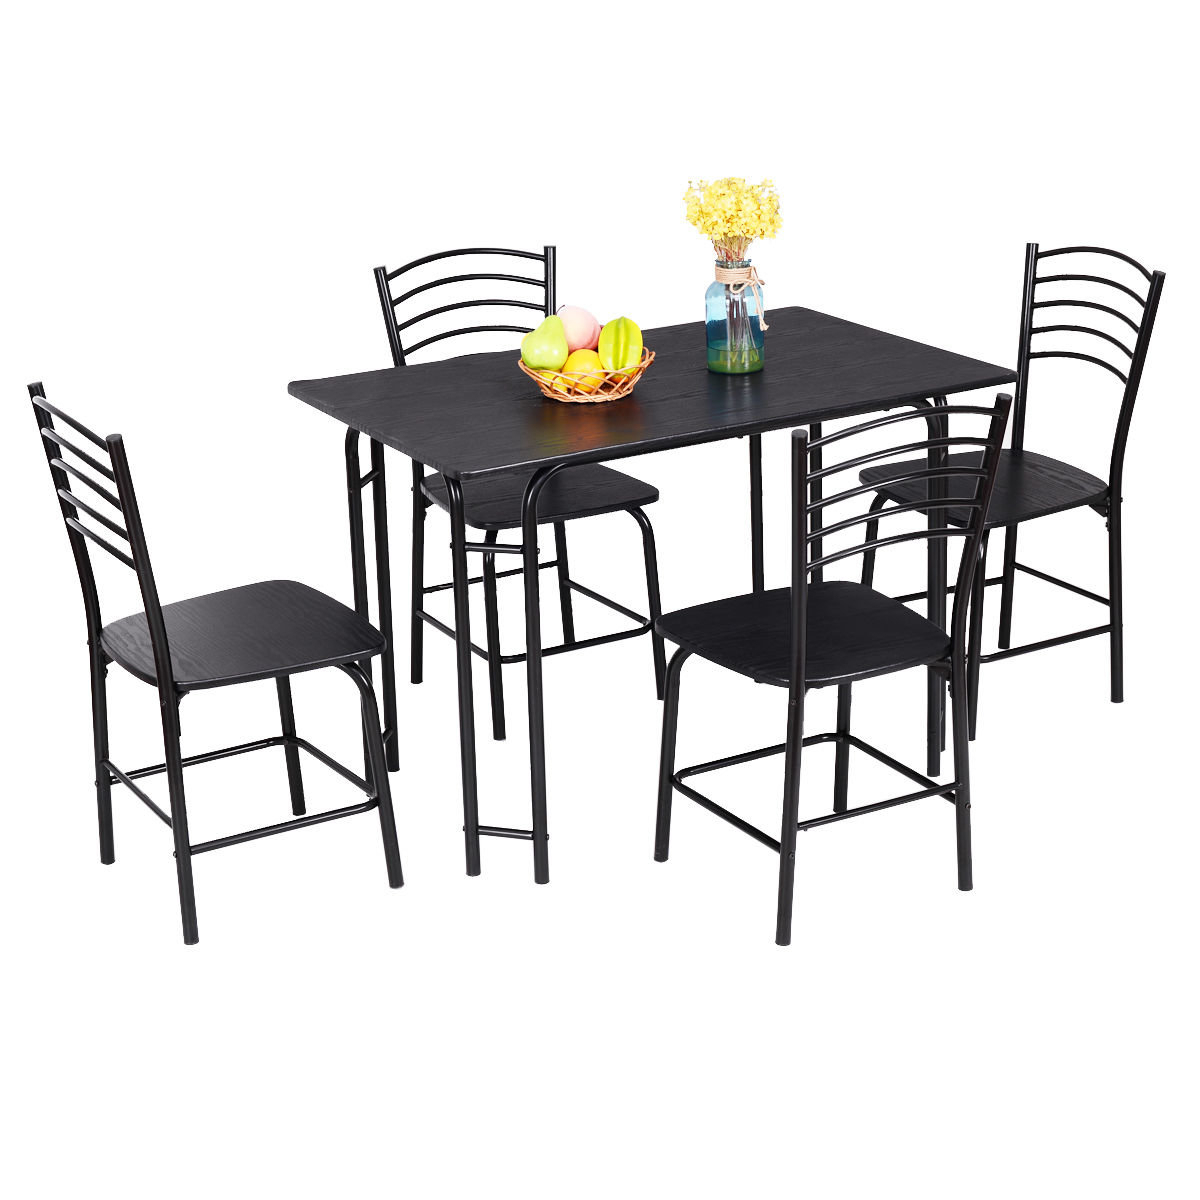 Ephraim 5 Piece Dining Set For Latest Turnalar 5 Piece Dining Sets (View 9 of 20)